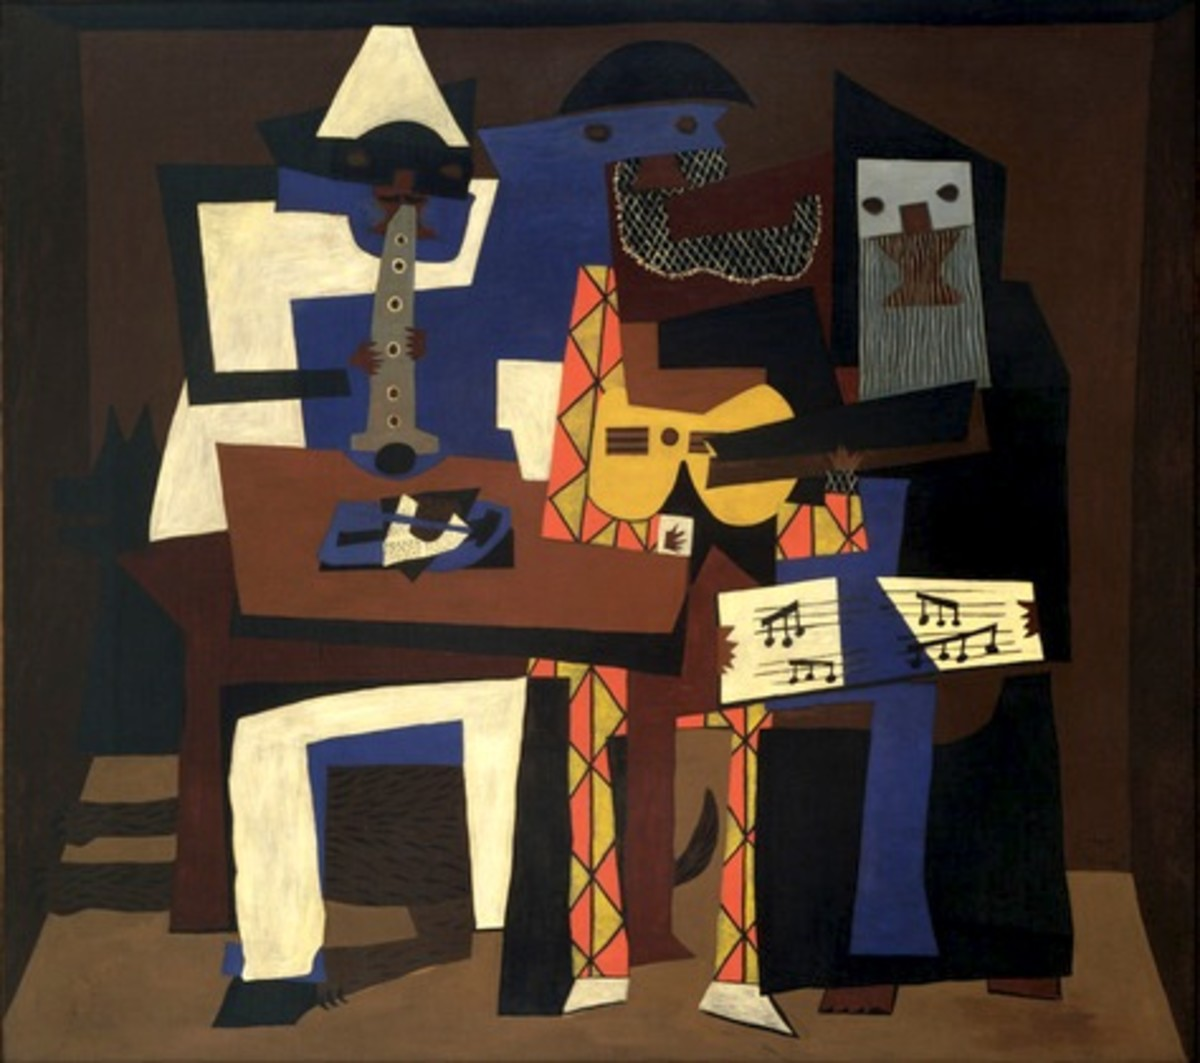 Cubism: The Art of Pablo Picasso